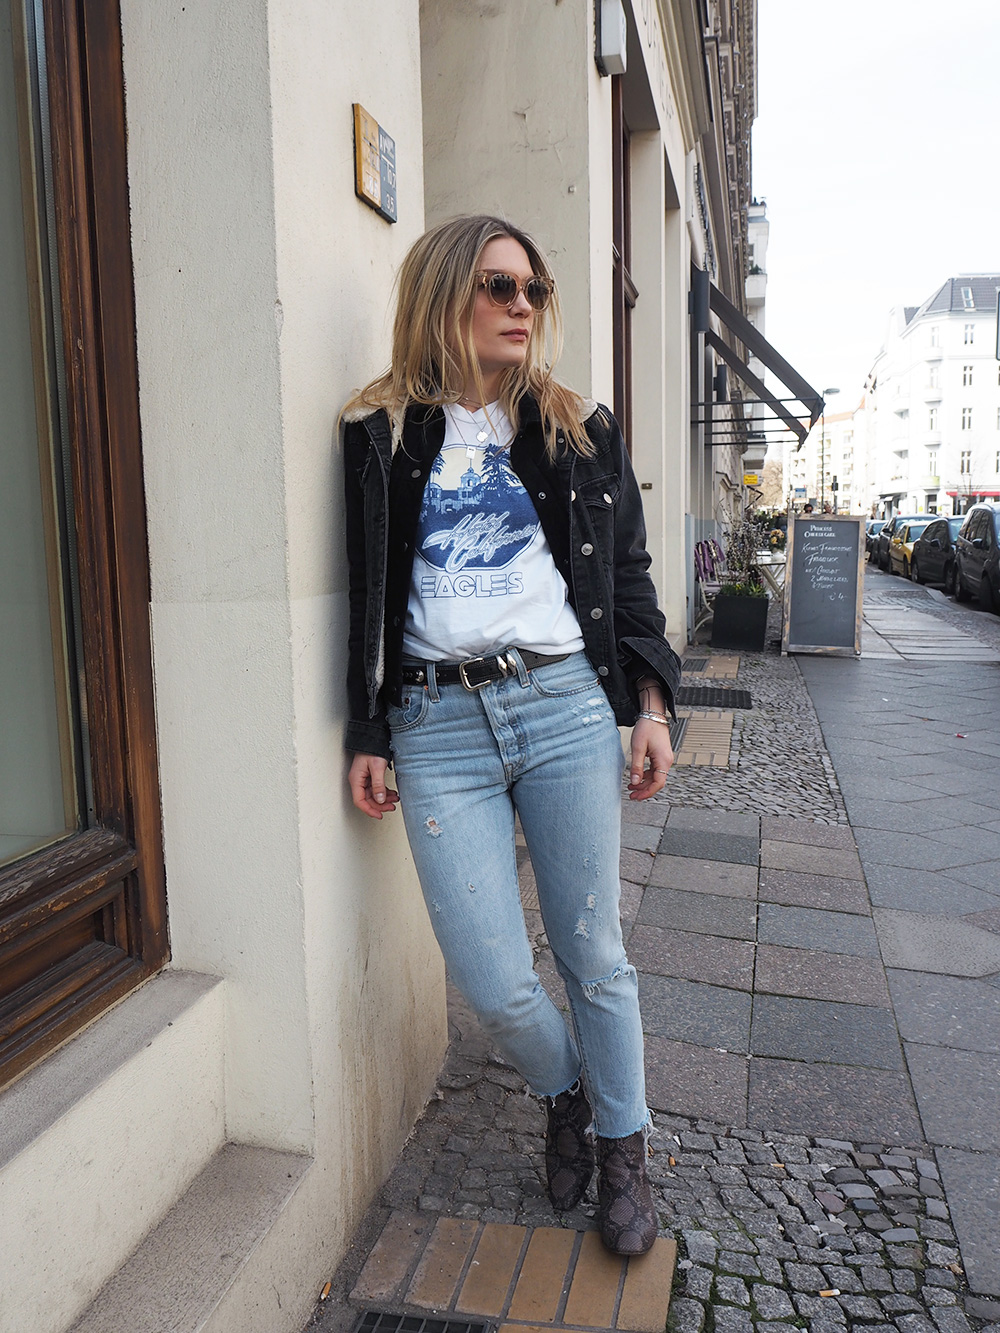 Rosycheeks-blog-Hotel-california-t-shirt-ace-tate-sunglasses